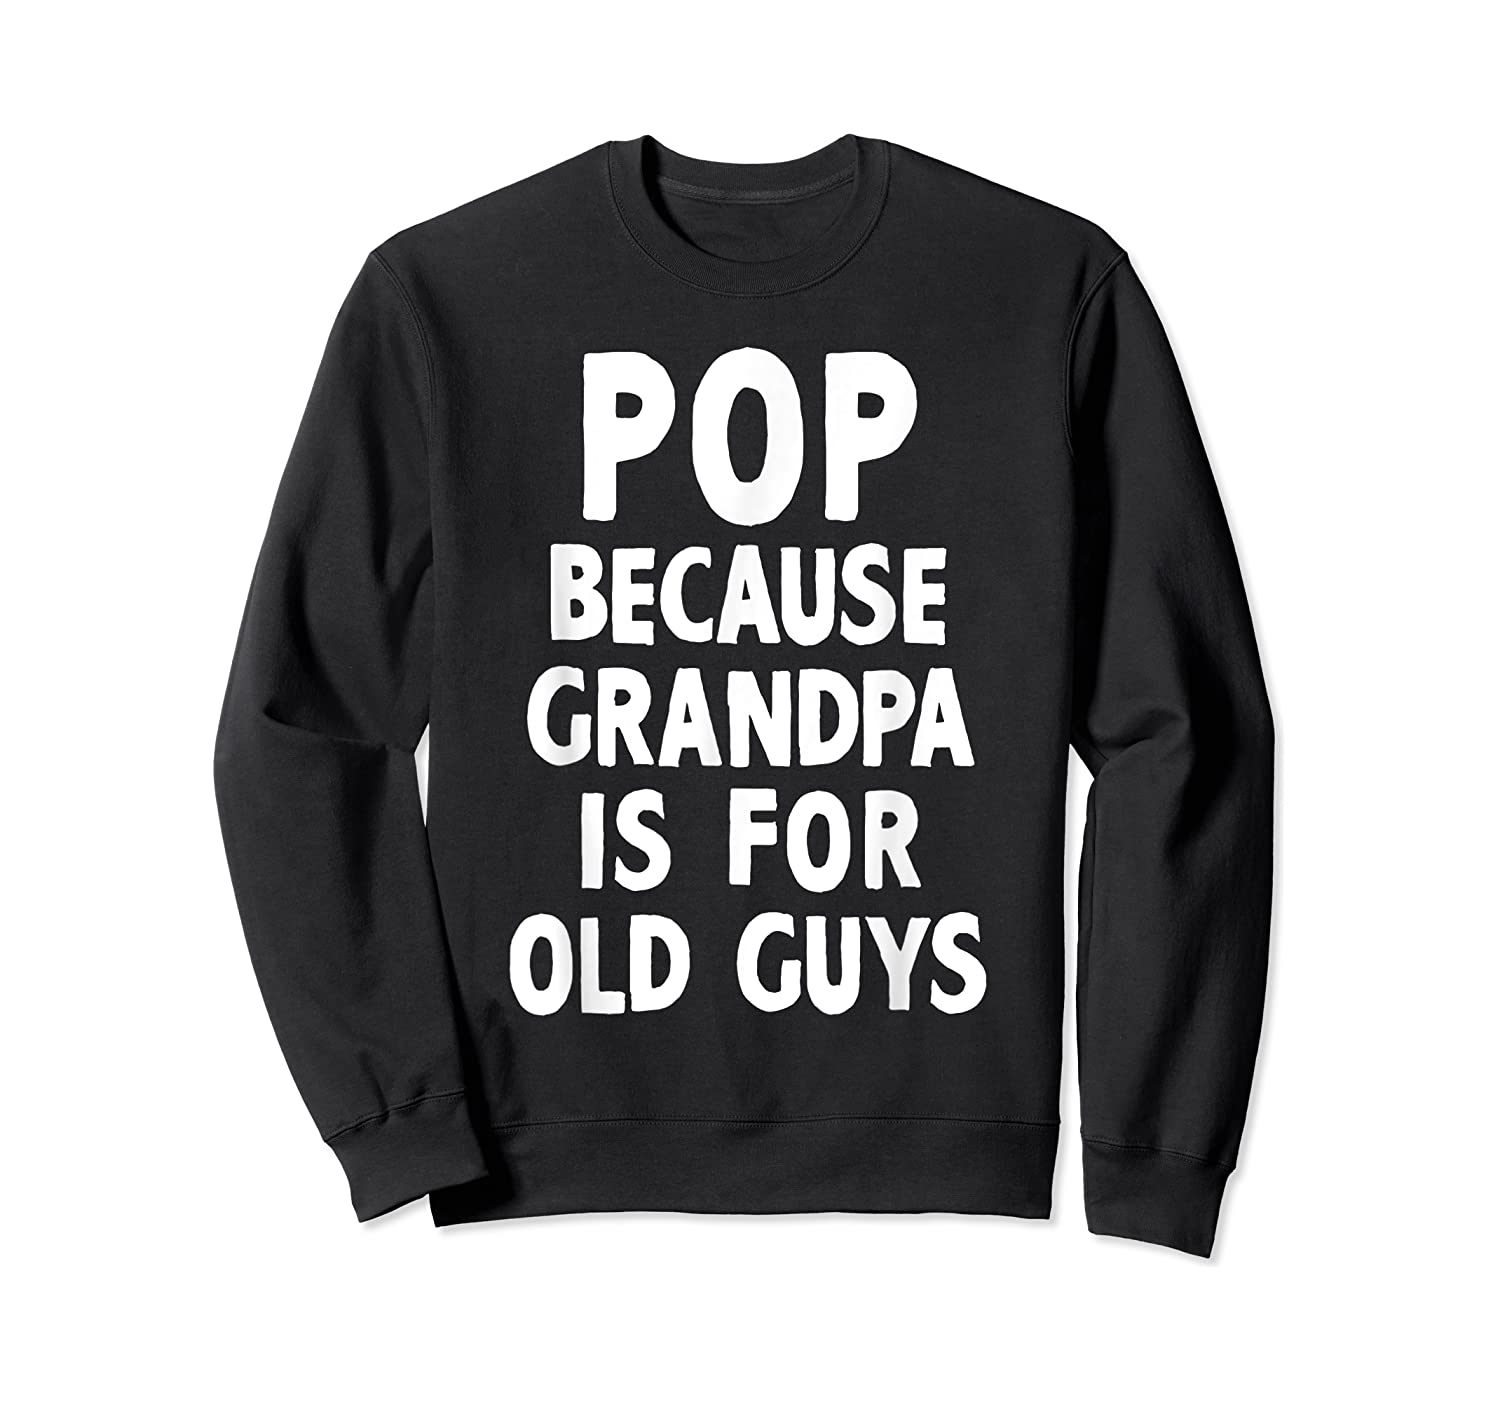 Pop Because Grandpa Is For Old Guys Funny Gift T-shirt T-shirt Crewneck Sweater